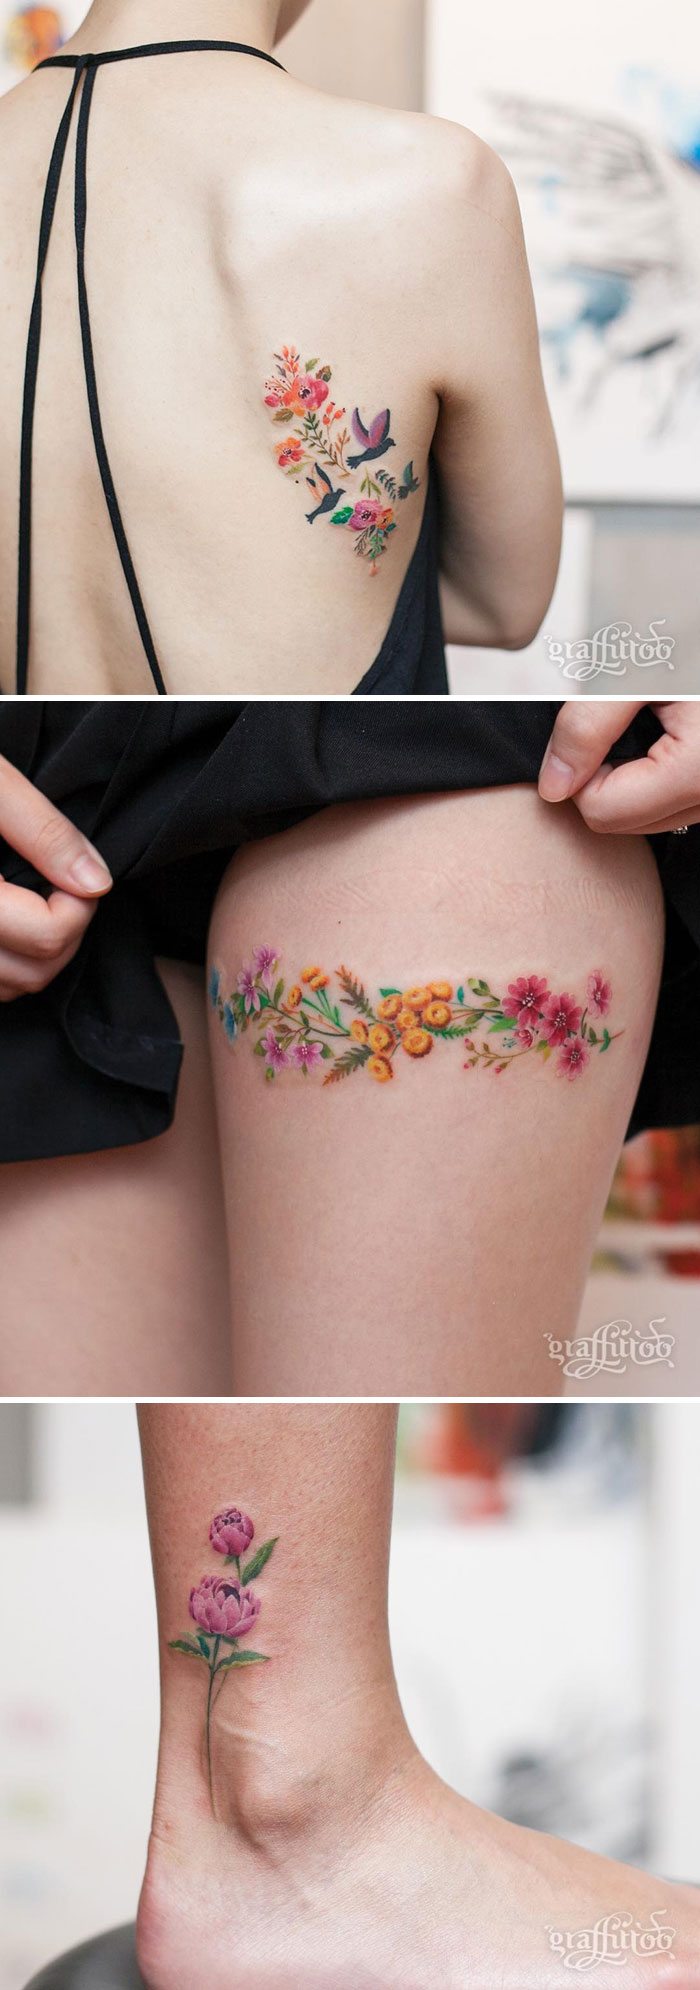 93b59fd69 30 Floral Tattoo Artists Who Will Make You Want To Get Inked | Bored Panda